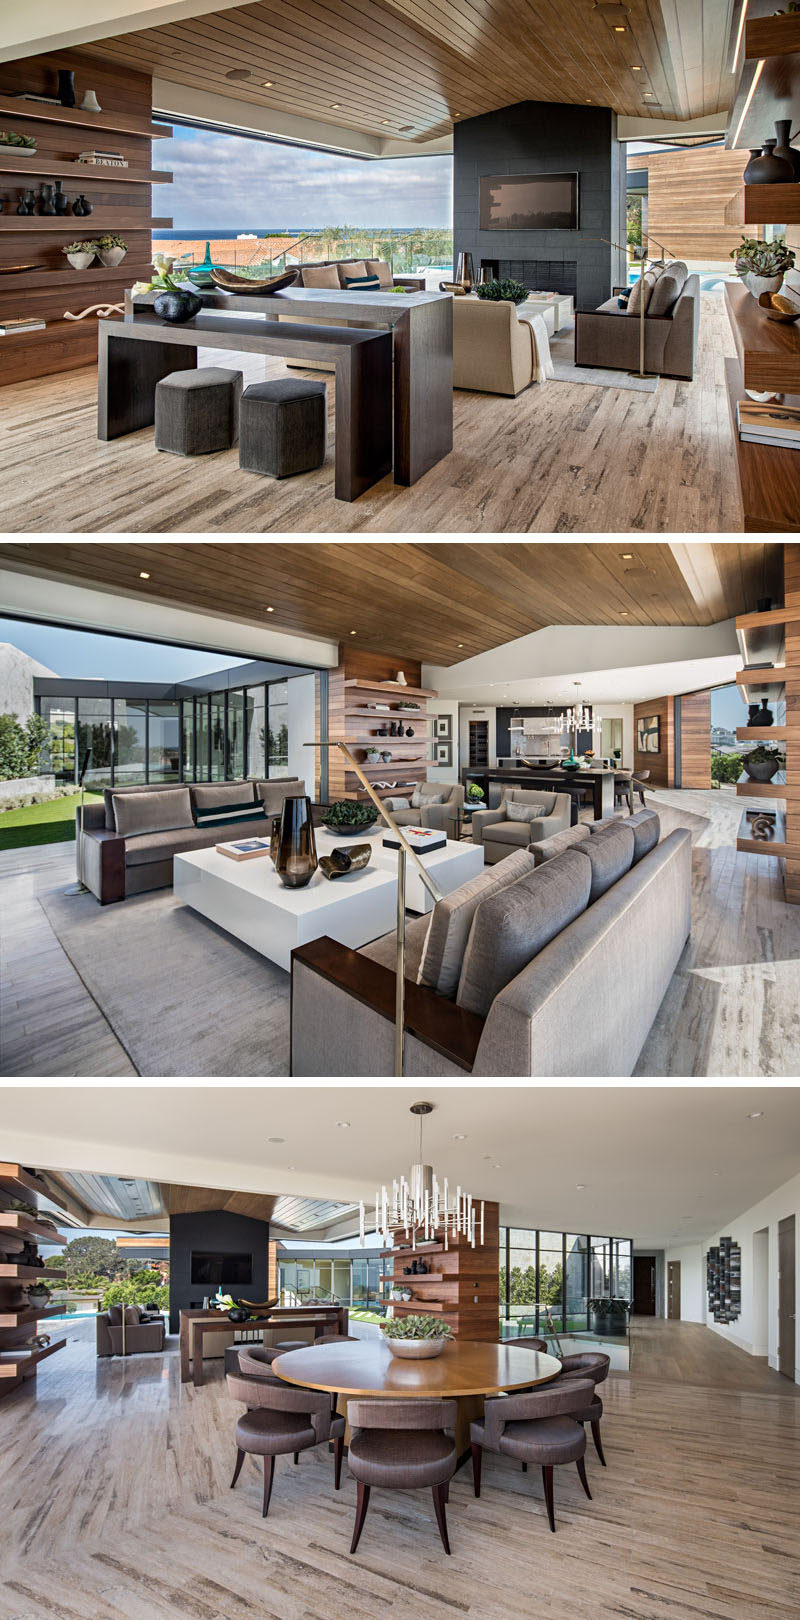 The main living area of this modern house is almost completely open to the outdoors. The living room, with a wood ceiling, is focused on the fireplace and the view, while the circular dining table separates the living room from the kitchen. #ModernLivingRoom #DiningRoom #InteriorDesign